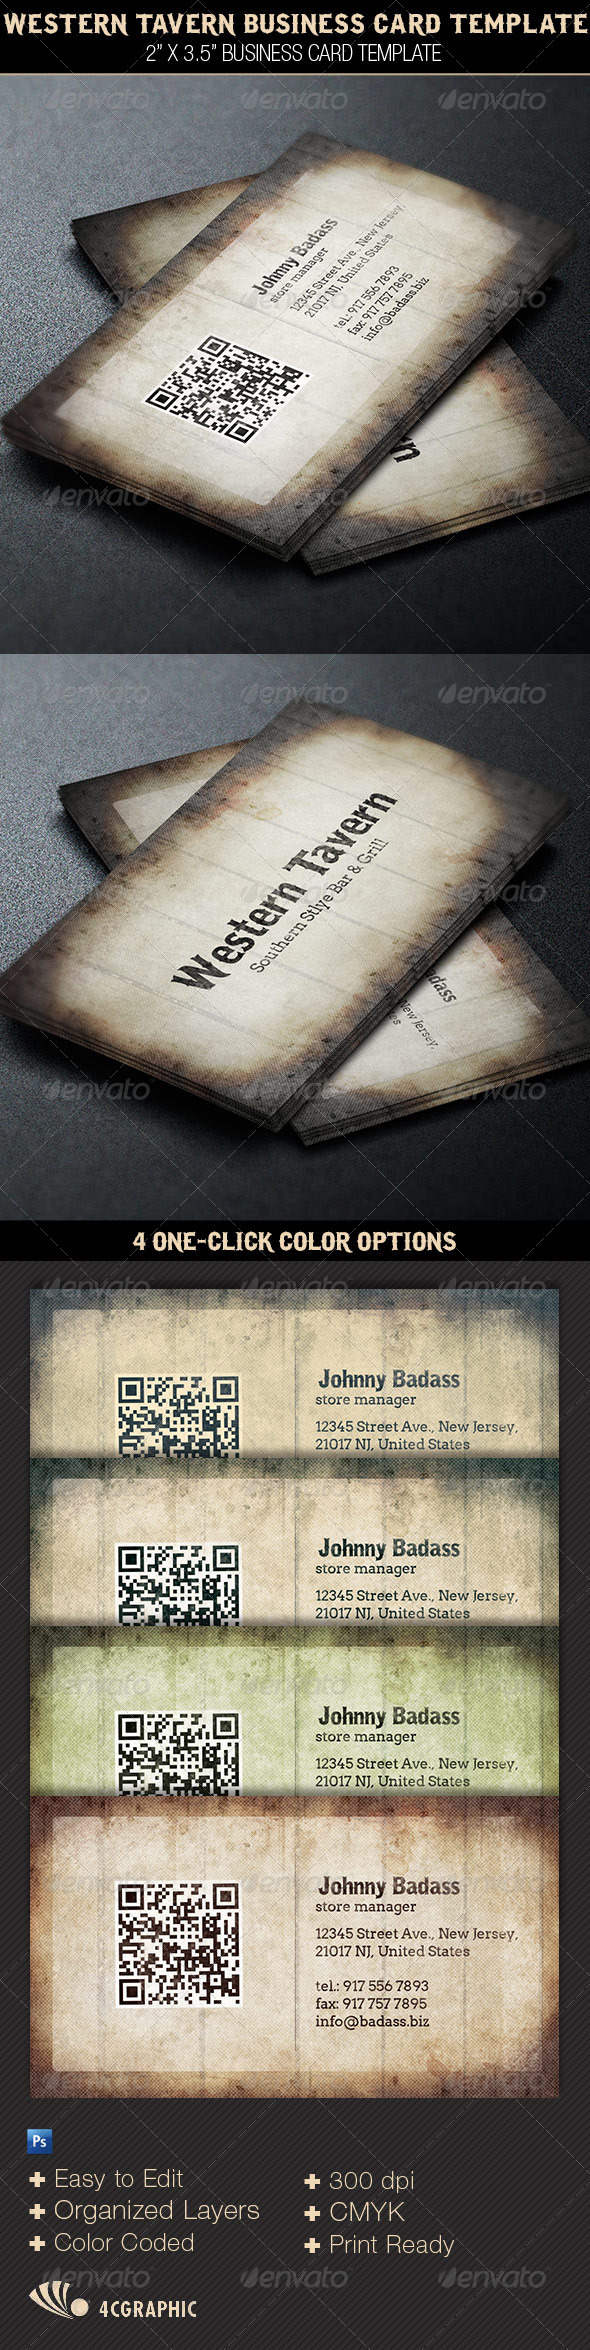 Western Tavern Business Card Template | Four C Graphic